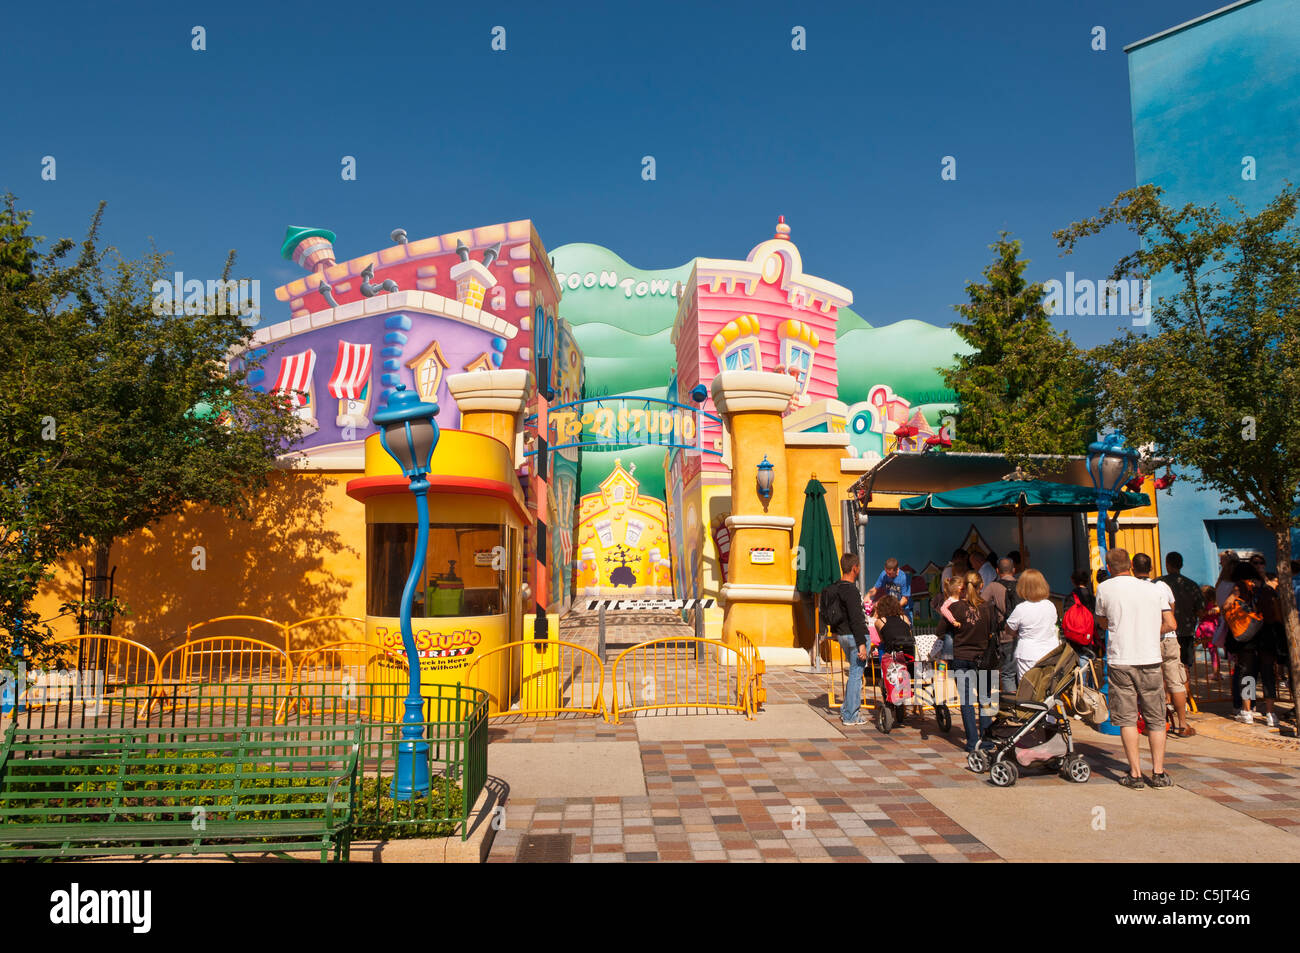 toon studio at the walt disney studios park at disneyland paris in stock photo 37908096 alamy. Black Bedroom Furniture Sets. Home Design Ideas